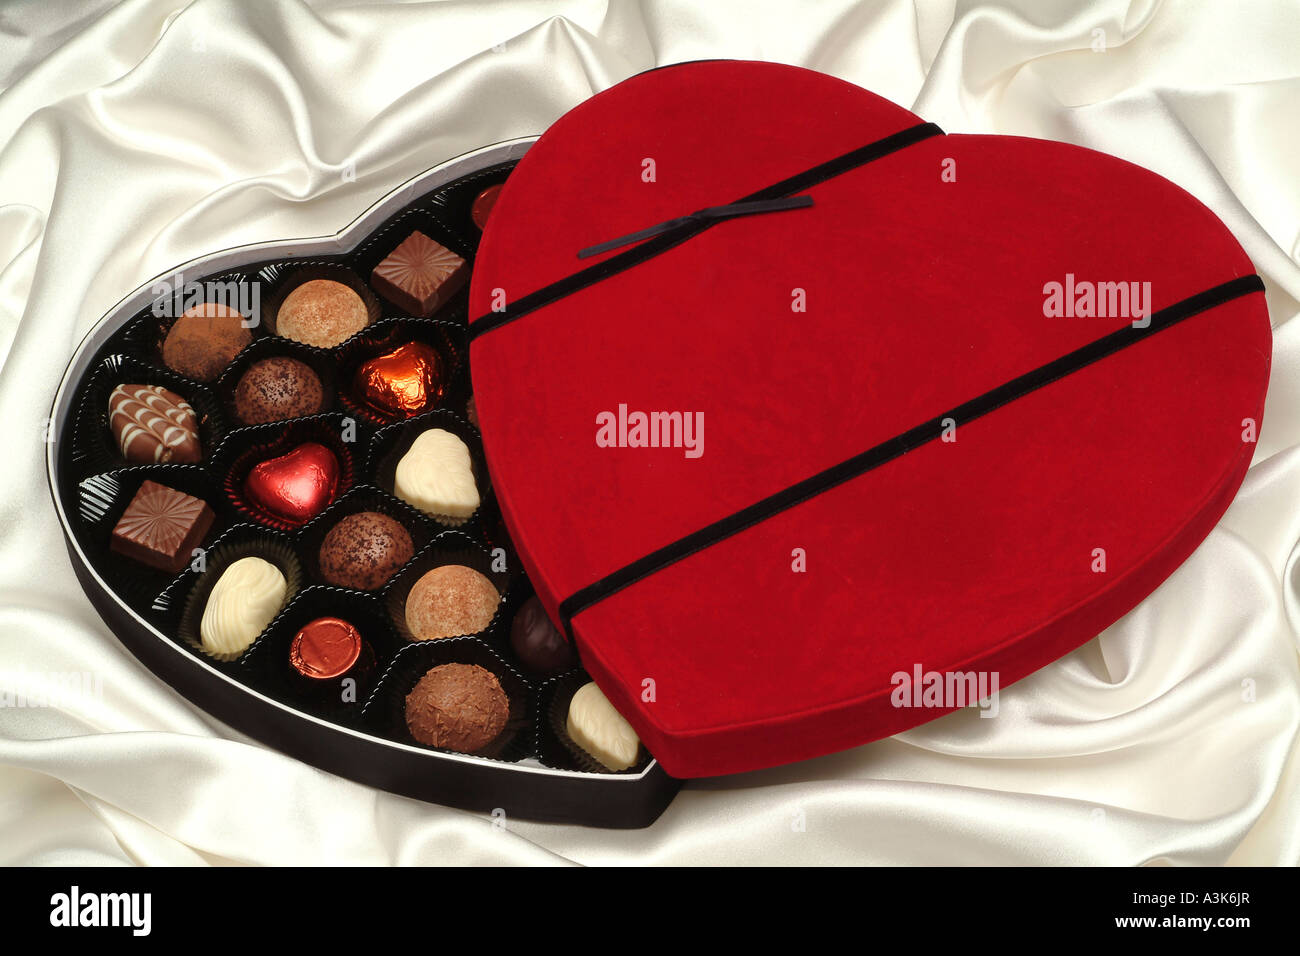 Heart-shaped box of chocolates - Stock Image